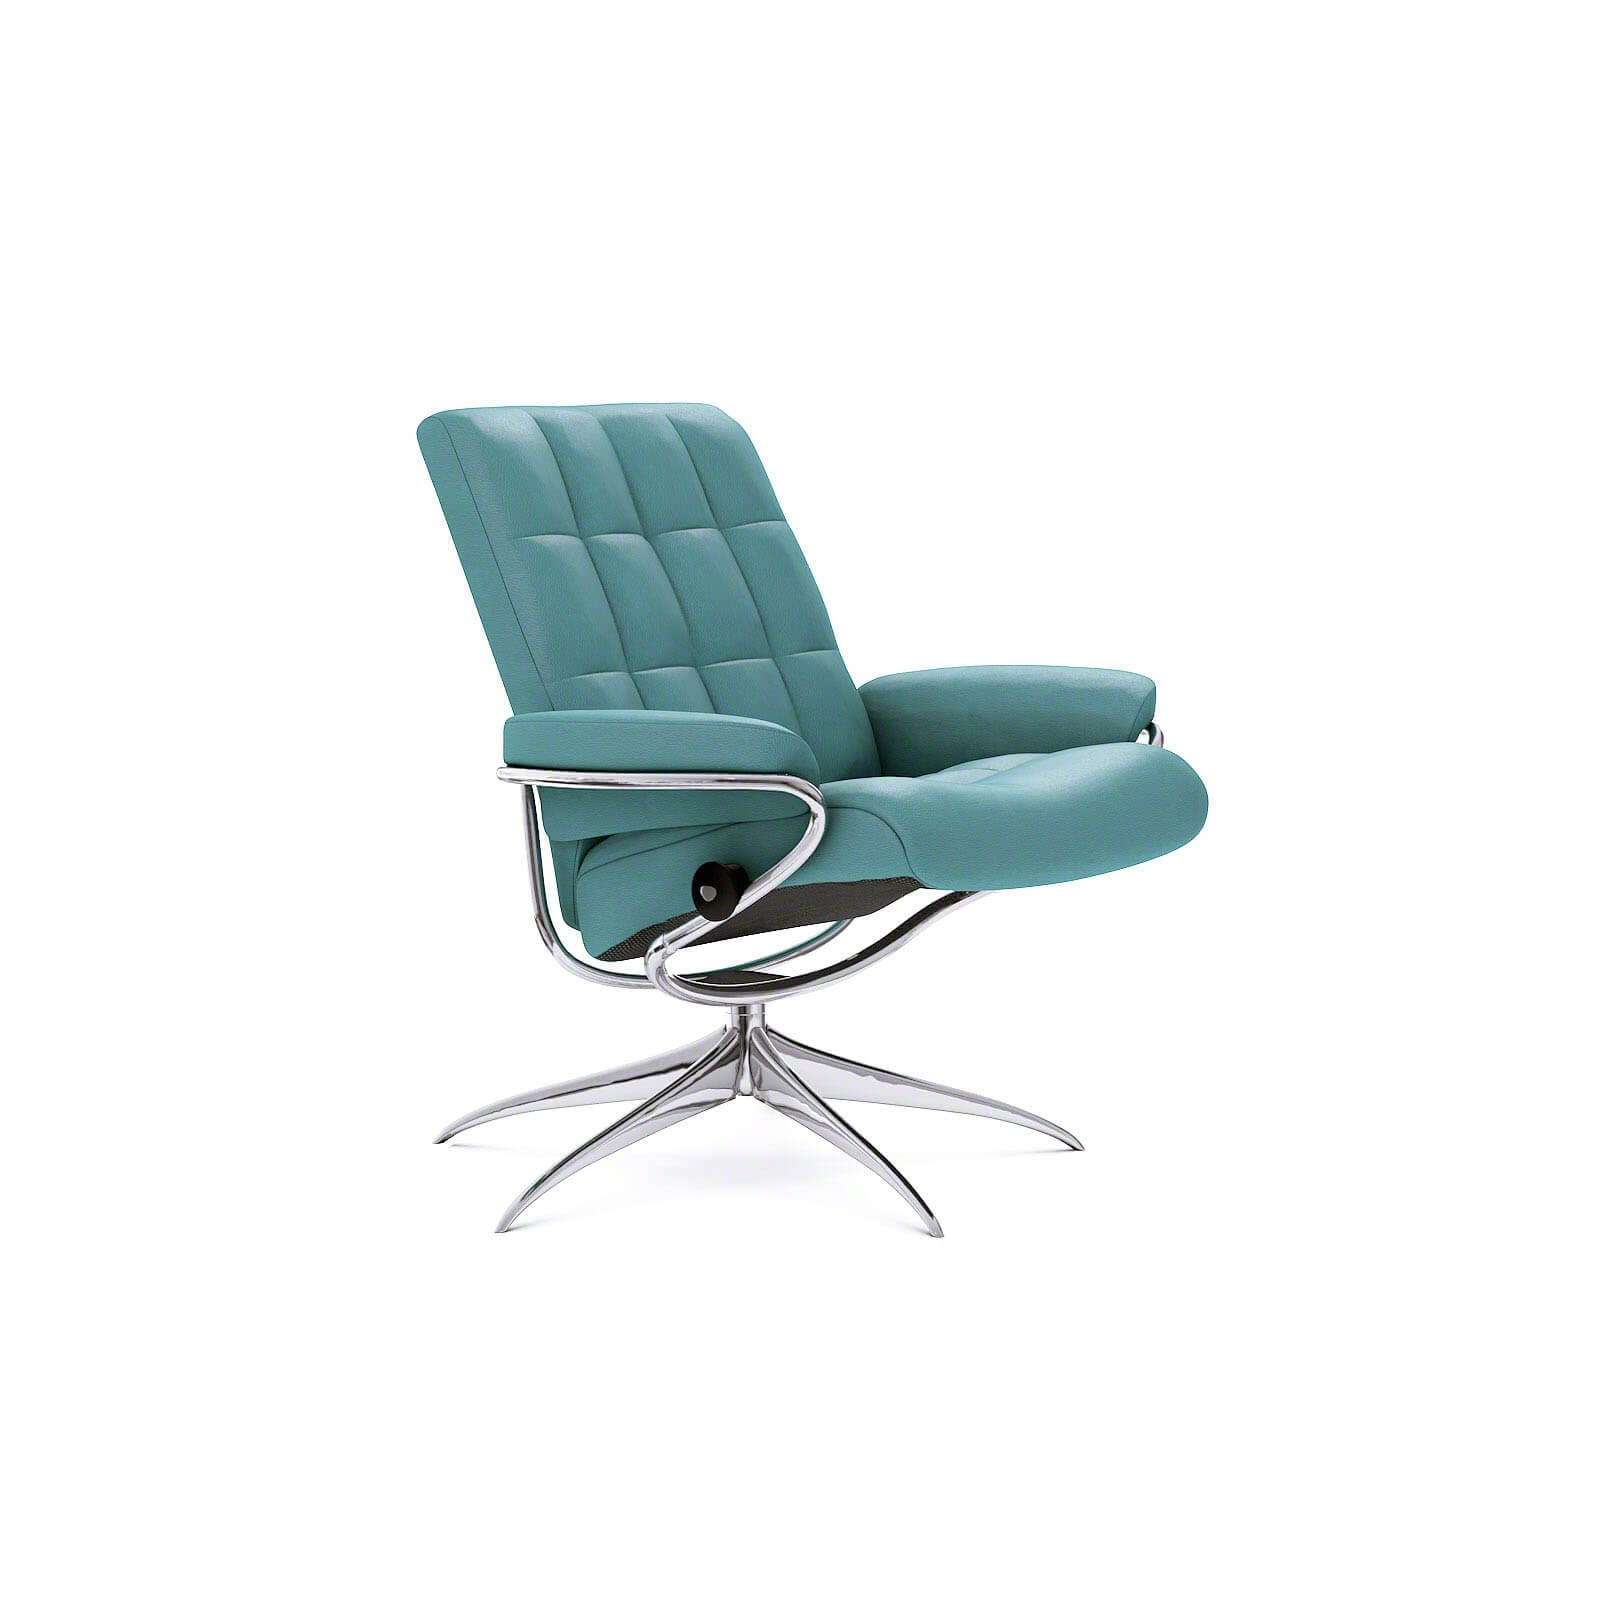 Sessel Aqua Stressless London Mit Niedriger Lehne Lederfarbe Aqua Green